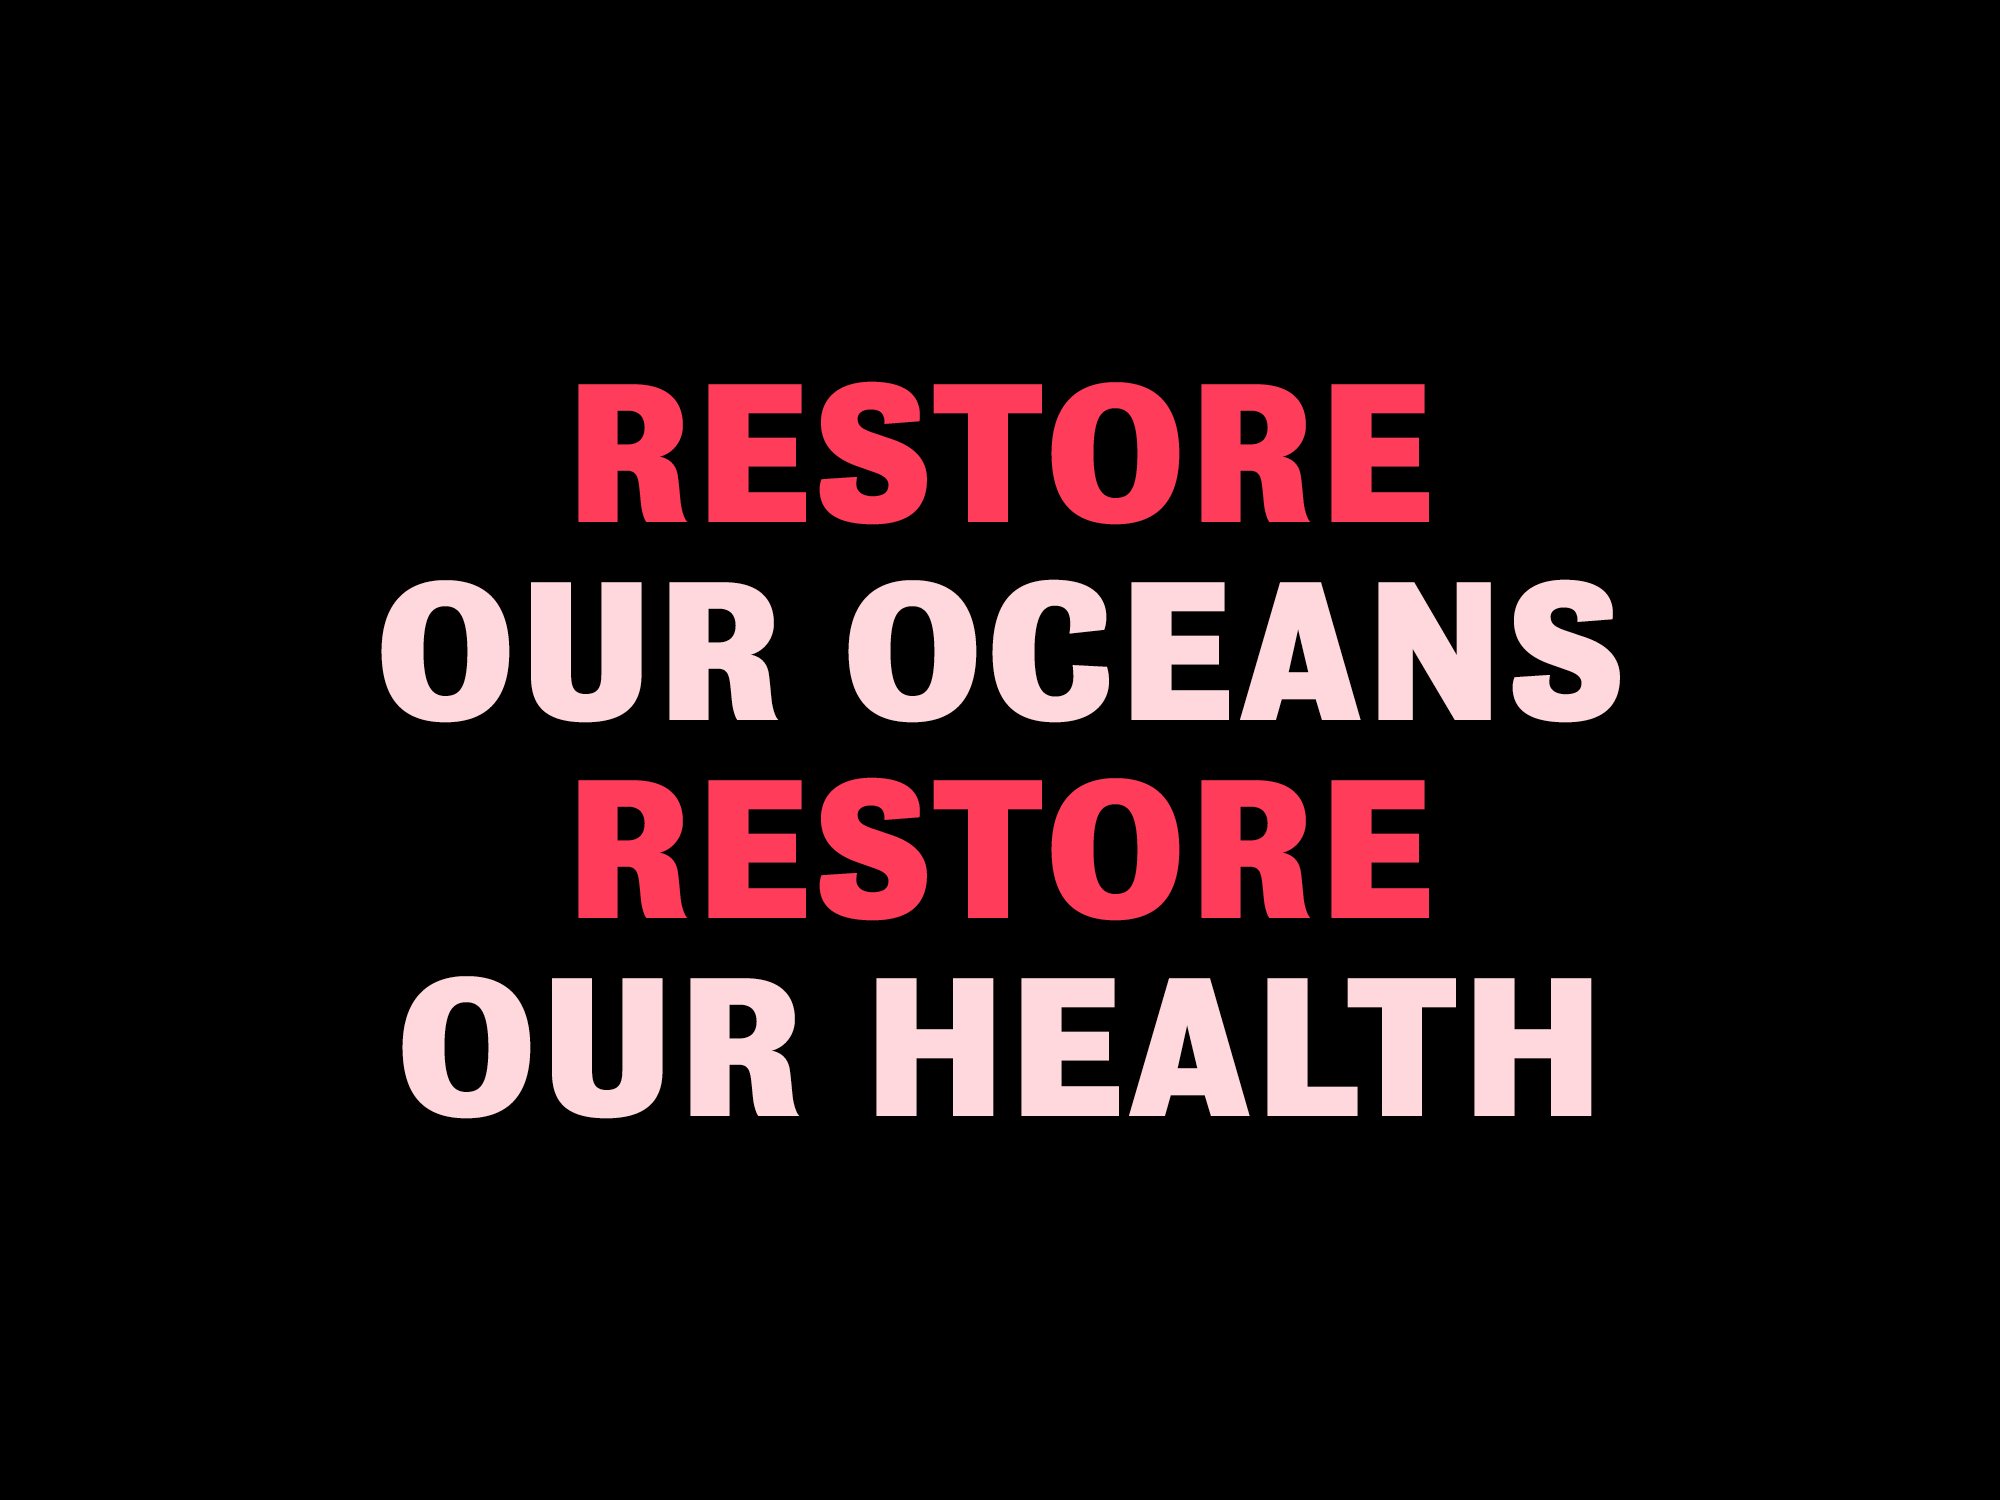 WHEN WE RESTORE OUR OCEANS, WE RESTORE OUR OWN HEALTH